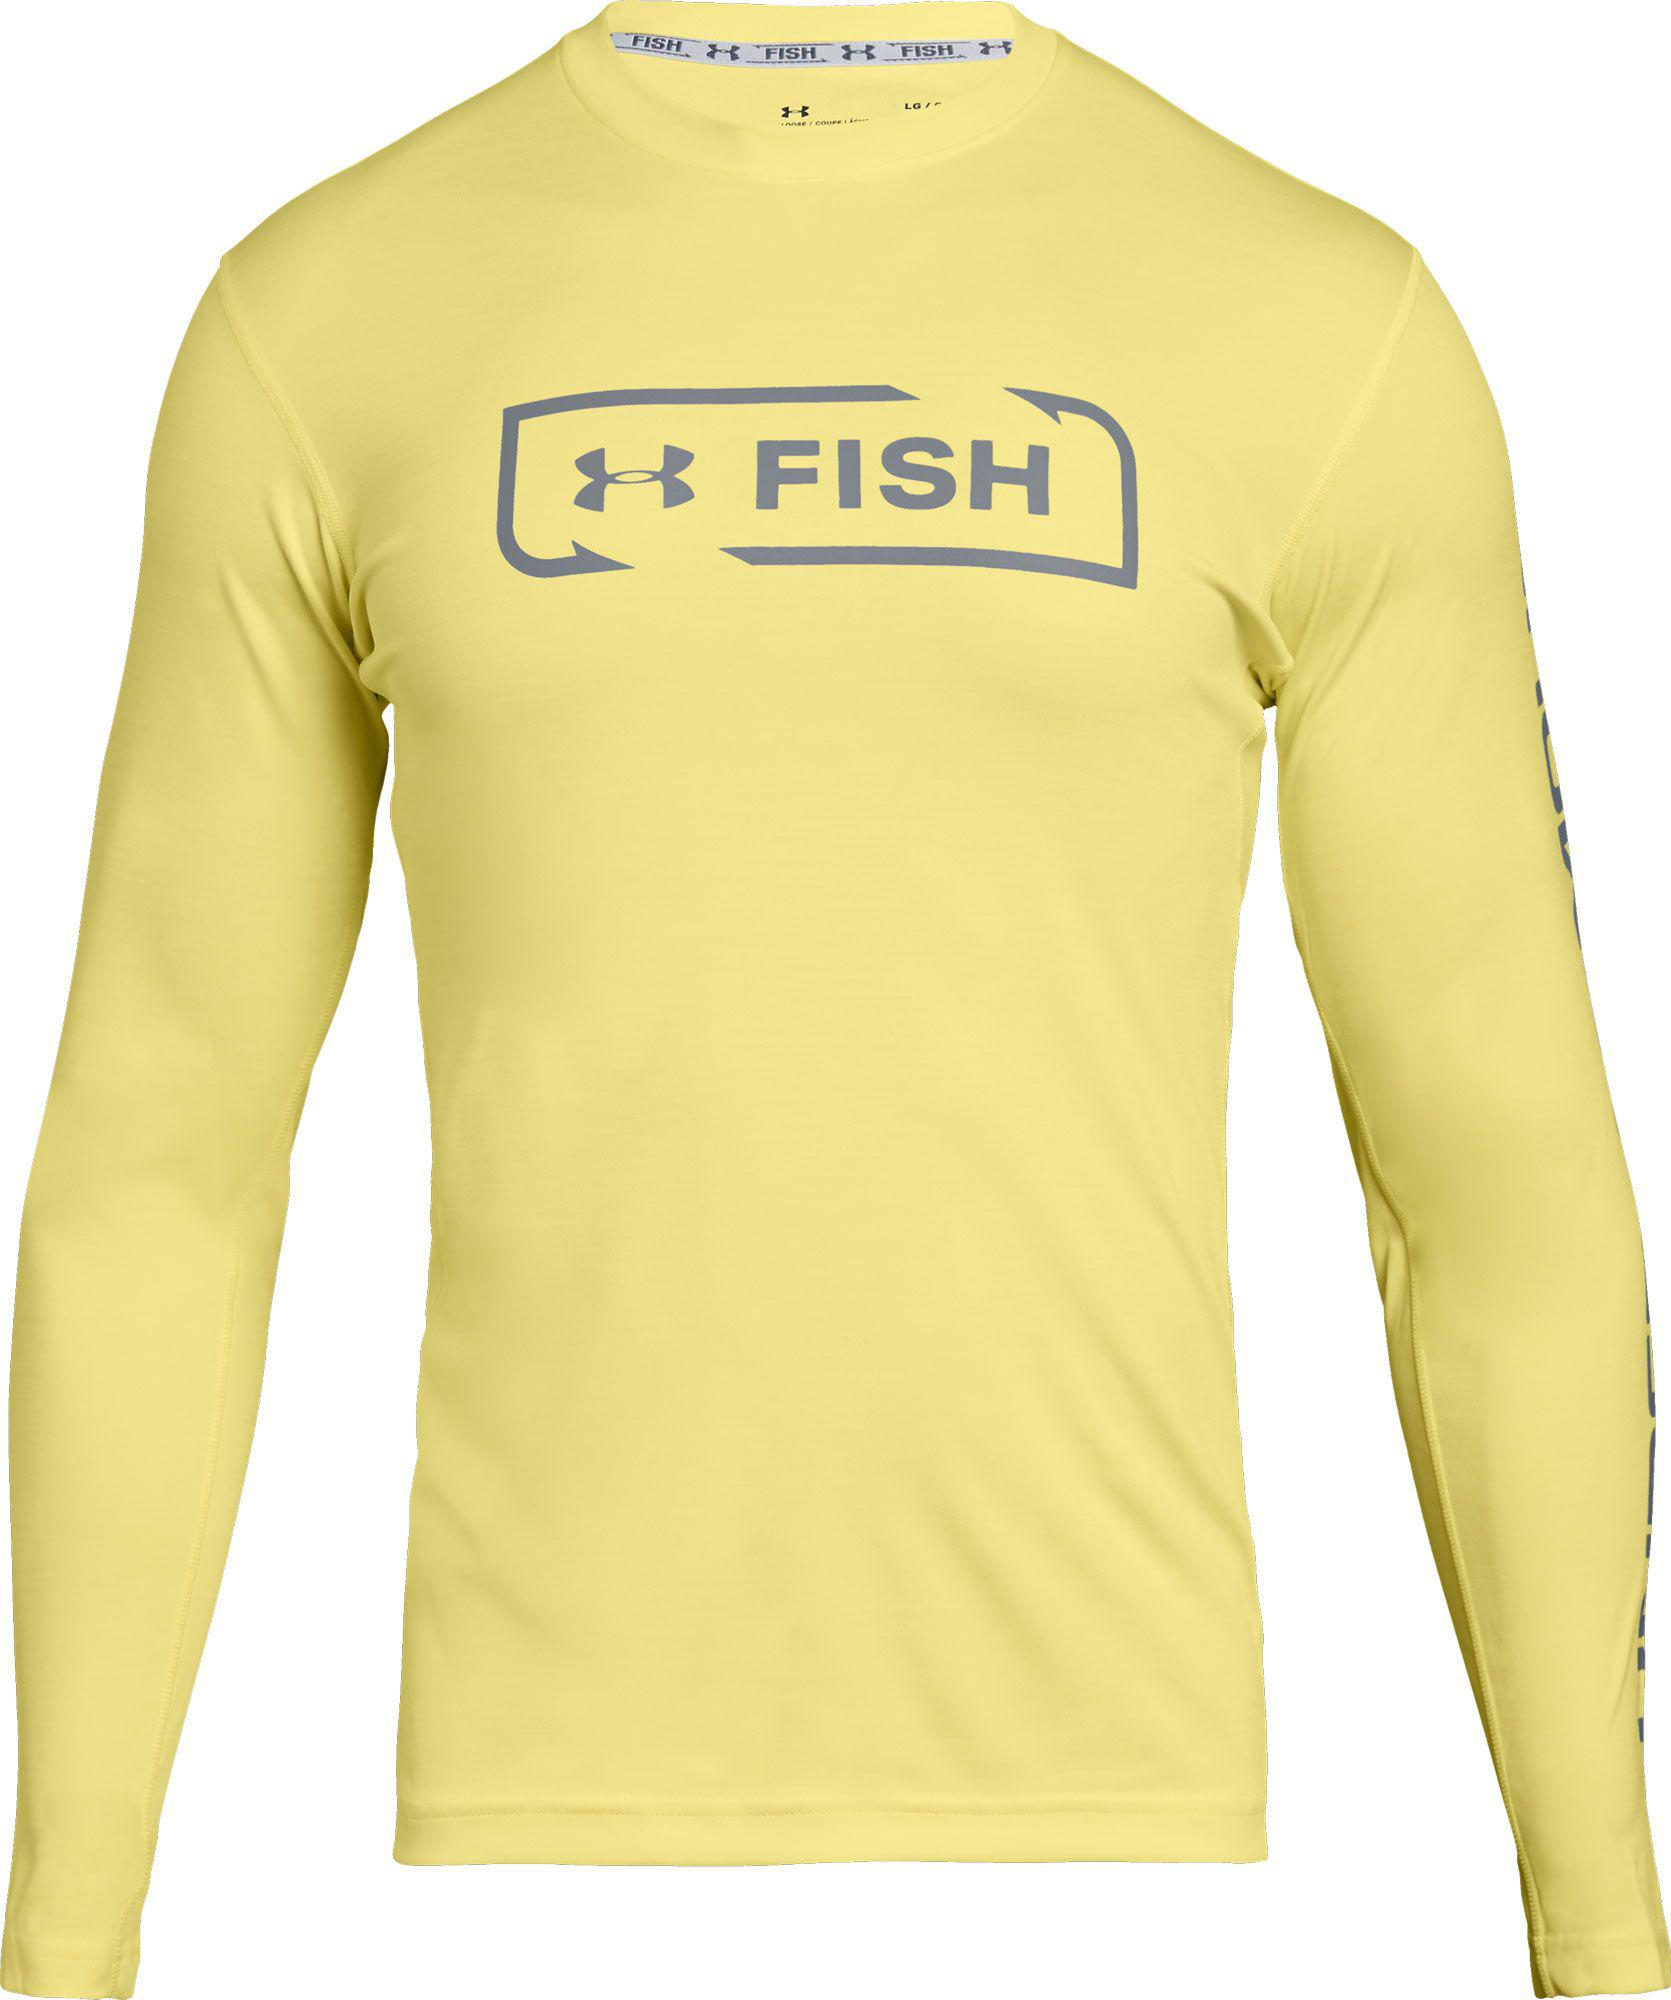 5e6af5c6 New Under Armour Fishing Shirts – EDGE Engineering and Consulting ...